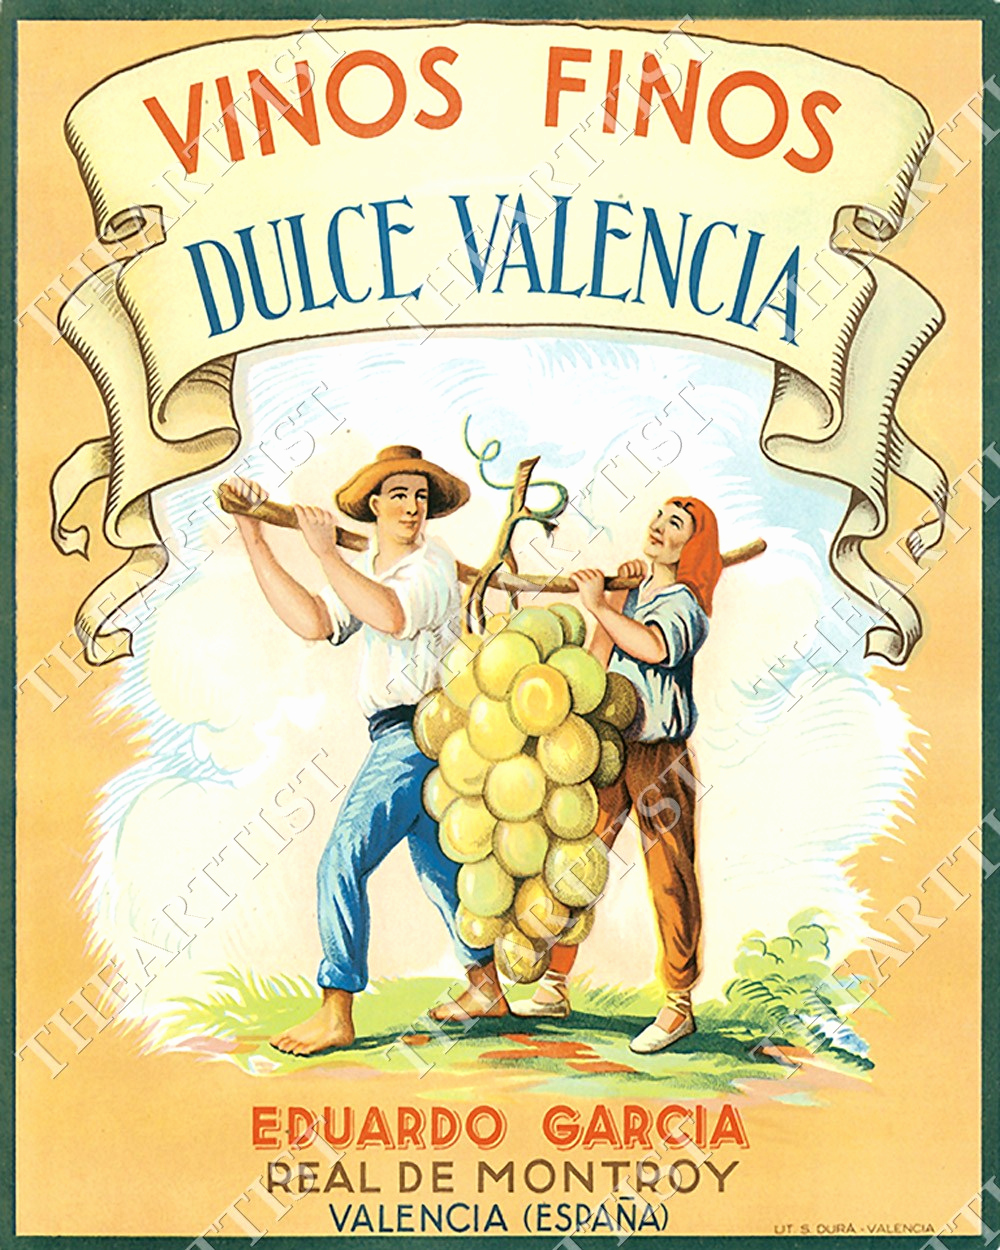 Free Printable Wine Labels Luxury Vintage Wine Label Vinos Finos Dulce Valencia Bar Art Game